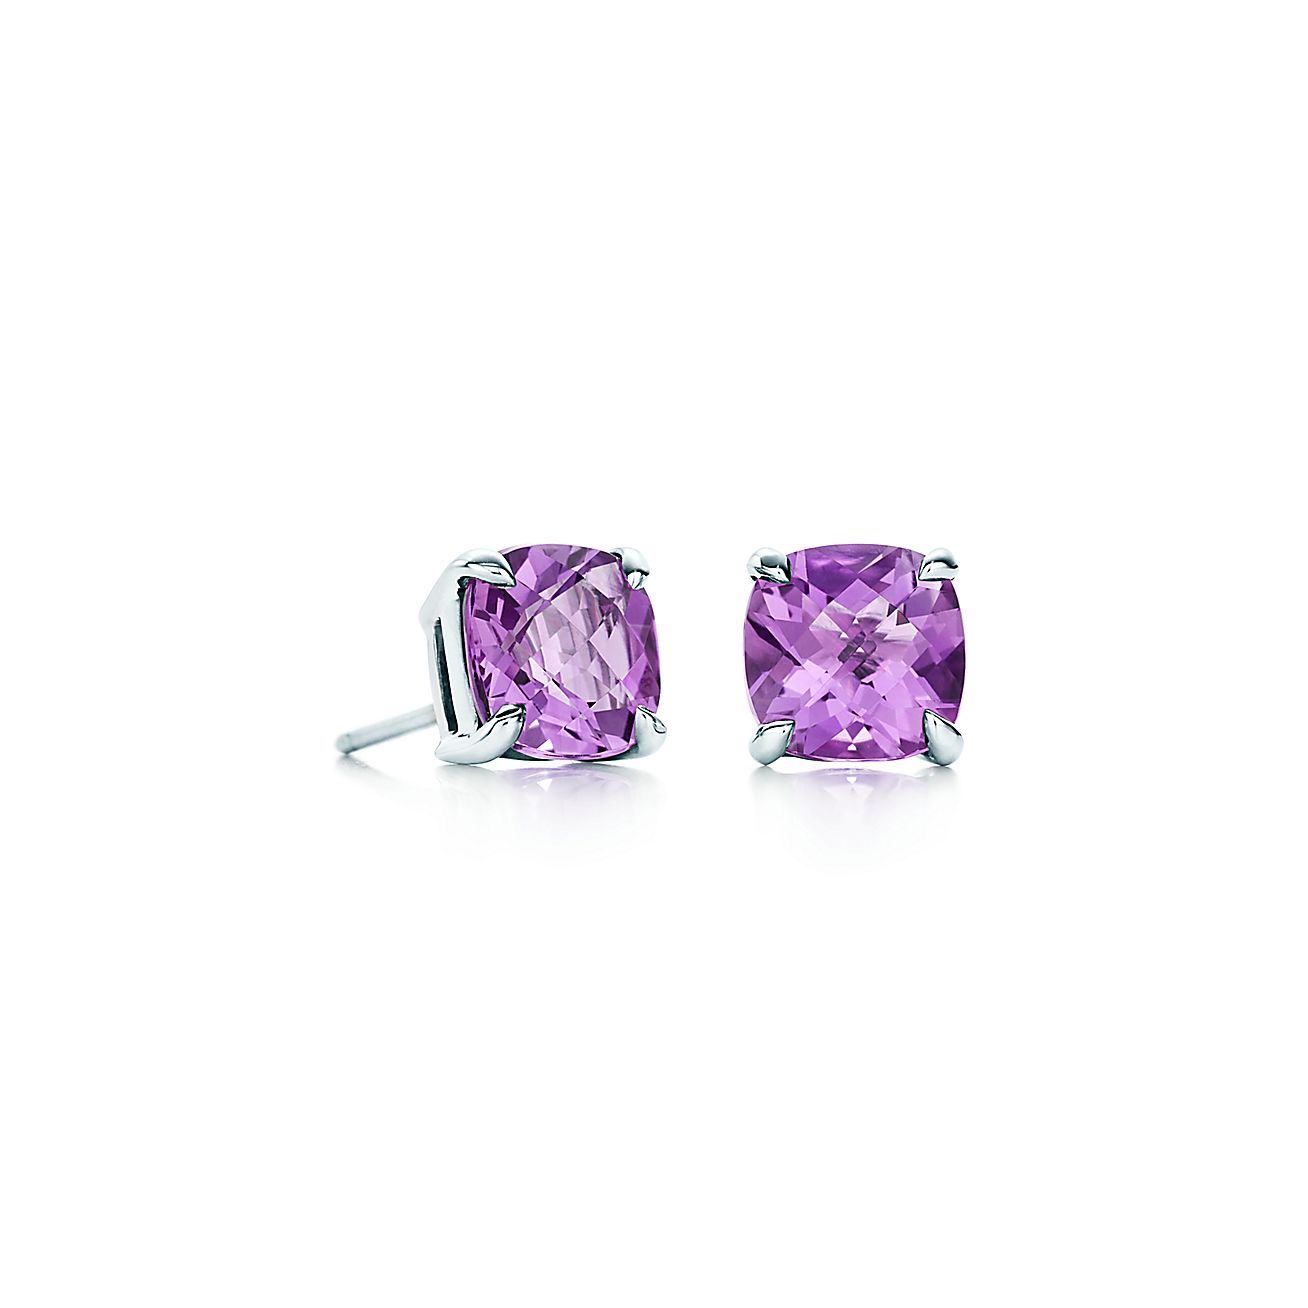 Tiffany Sparklers:Amethyst Earrings